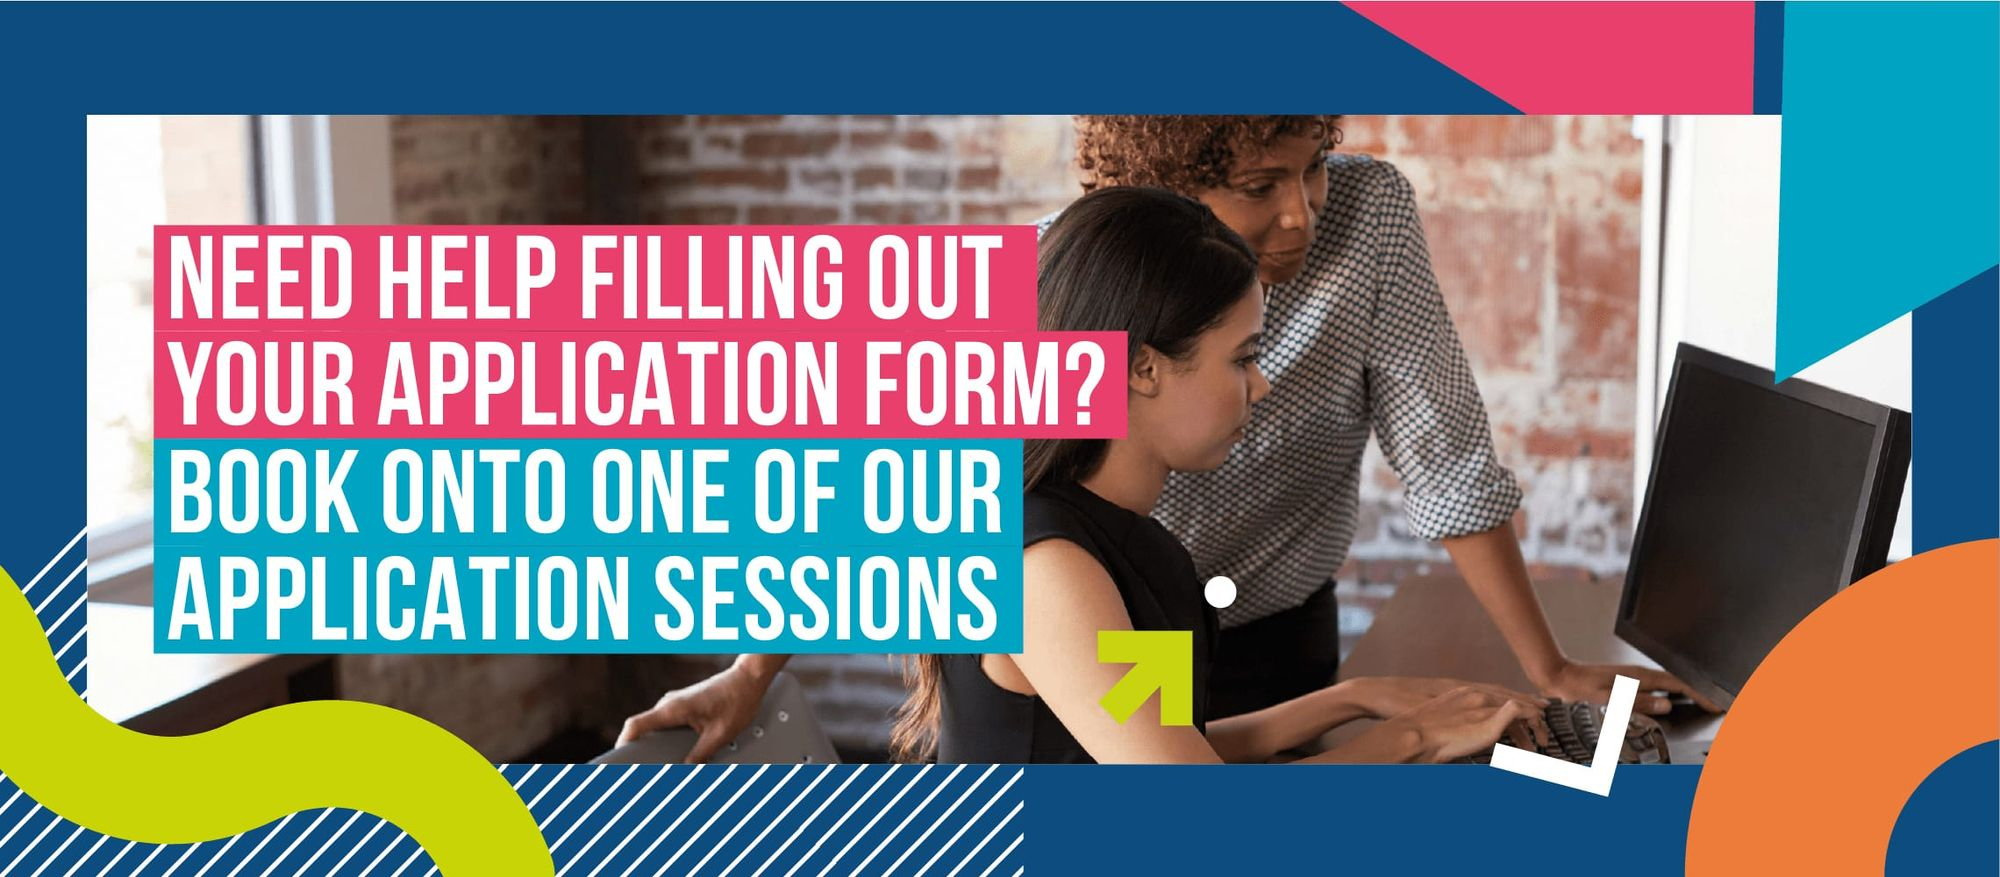 Book an application session